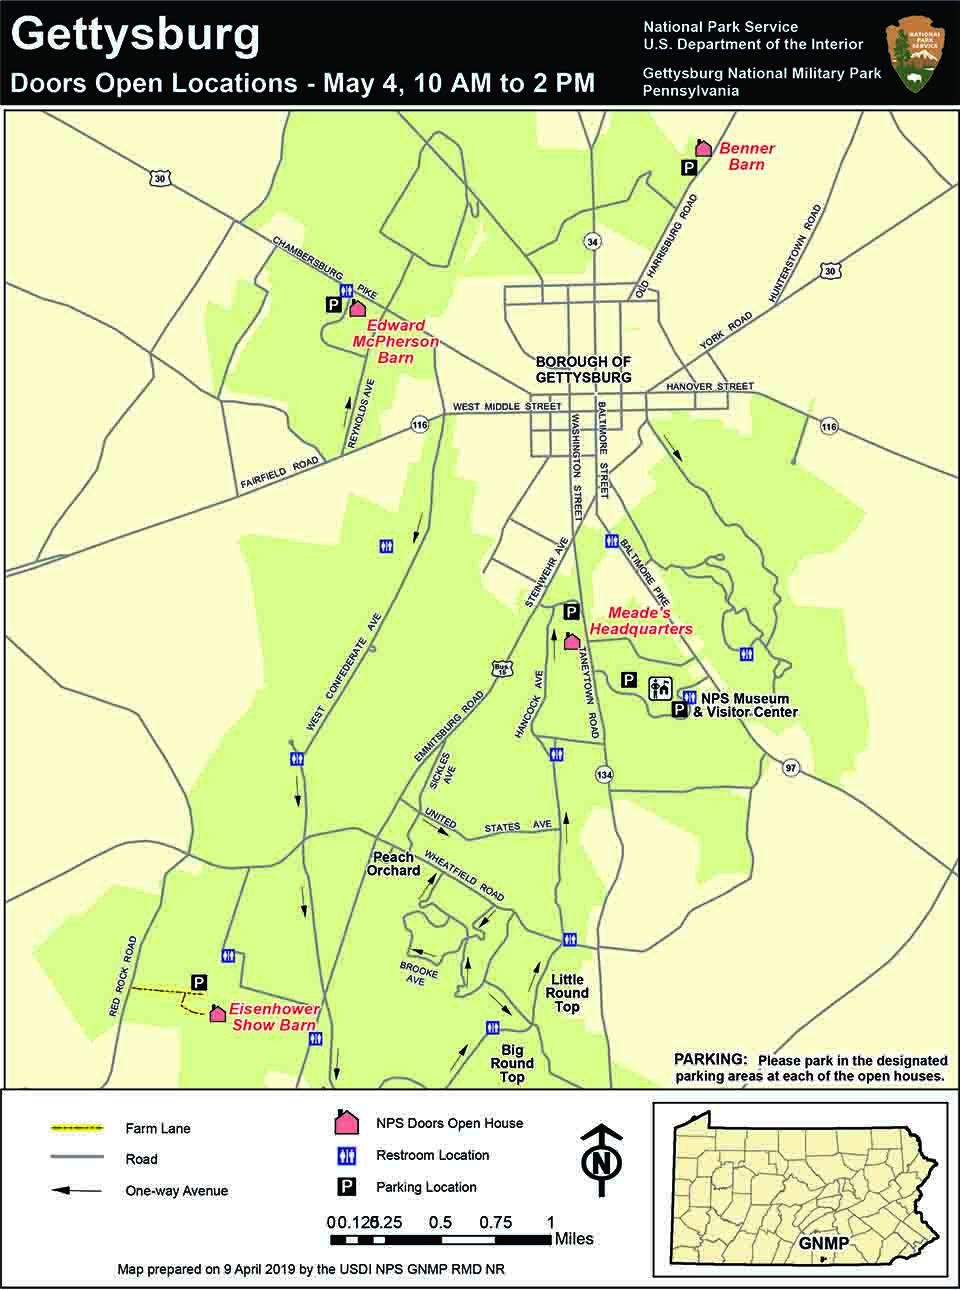 "Explore Four Gettysburg Structures During ""Doors Open ... on gettysburg historic site map, gettysburg johnny reb trail guide, gettysburg national history, gettysburg tour map, gettysburg cemetery map, gettysburg city map, gettysburg national visitor center, gettysburg visitor center gift shop, gettysburg visitor center hours, pennsylvania national parks map, gettysburg south dakota map, cemetery hill map, gettysburg address map, gettysburg walking map, gettysburg tourism map, gettysburg virginia map, gettysburg pennsylvania on us map, gettysburg topographic map, jackson parish louisiana map, gettysburg monuments map by state,"